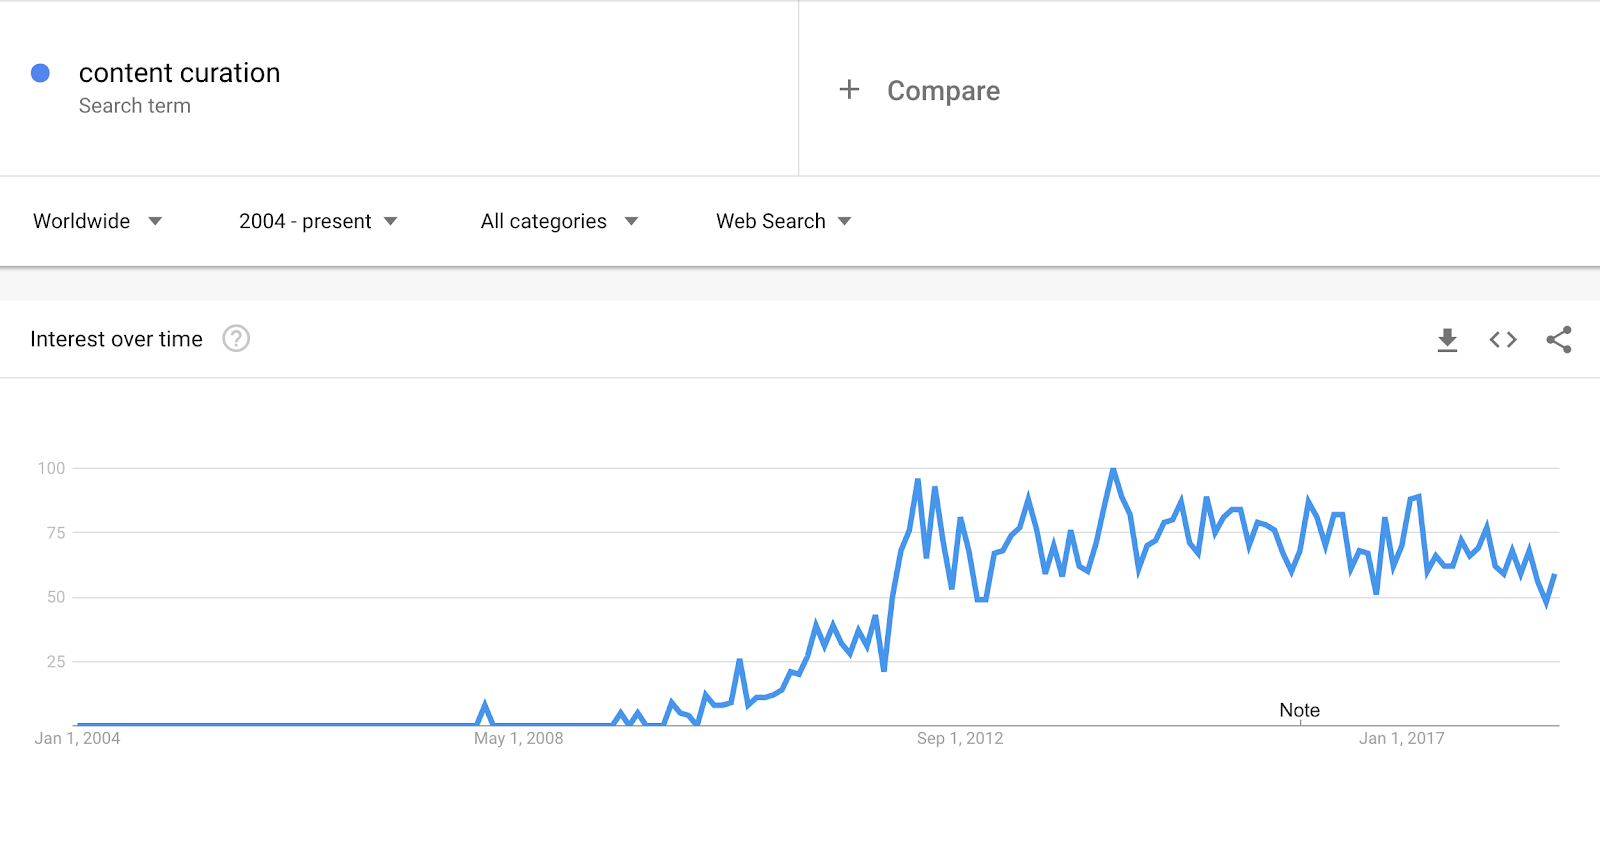 Content curation on Google Trends